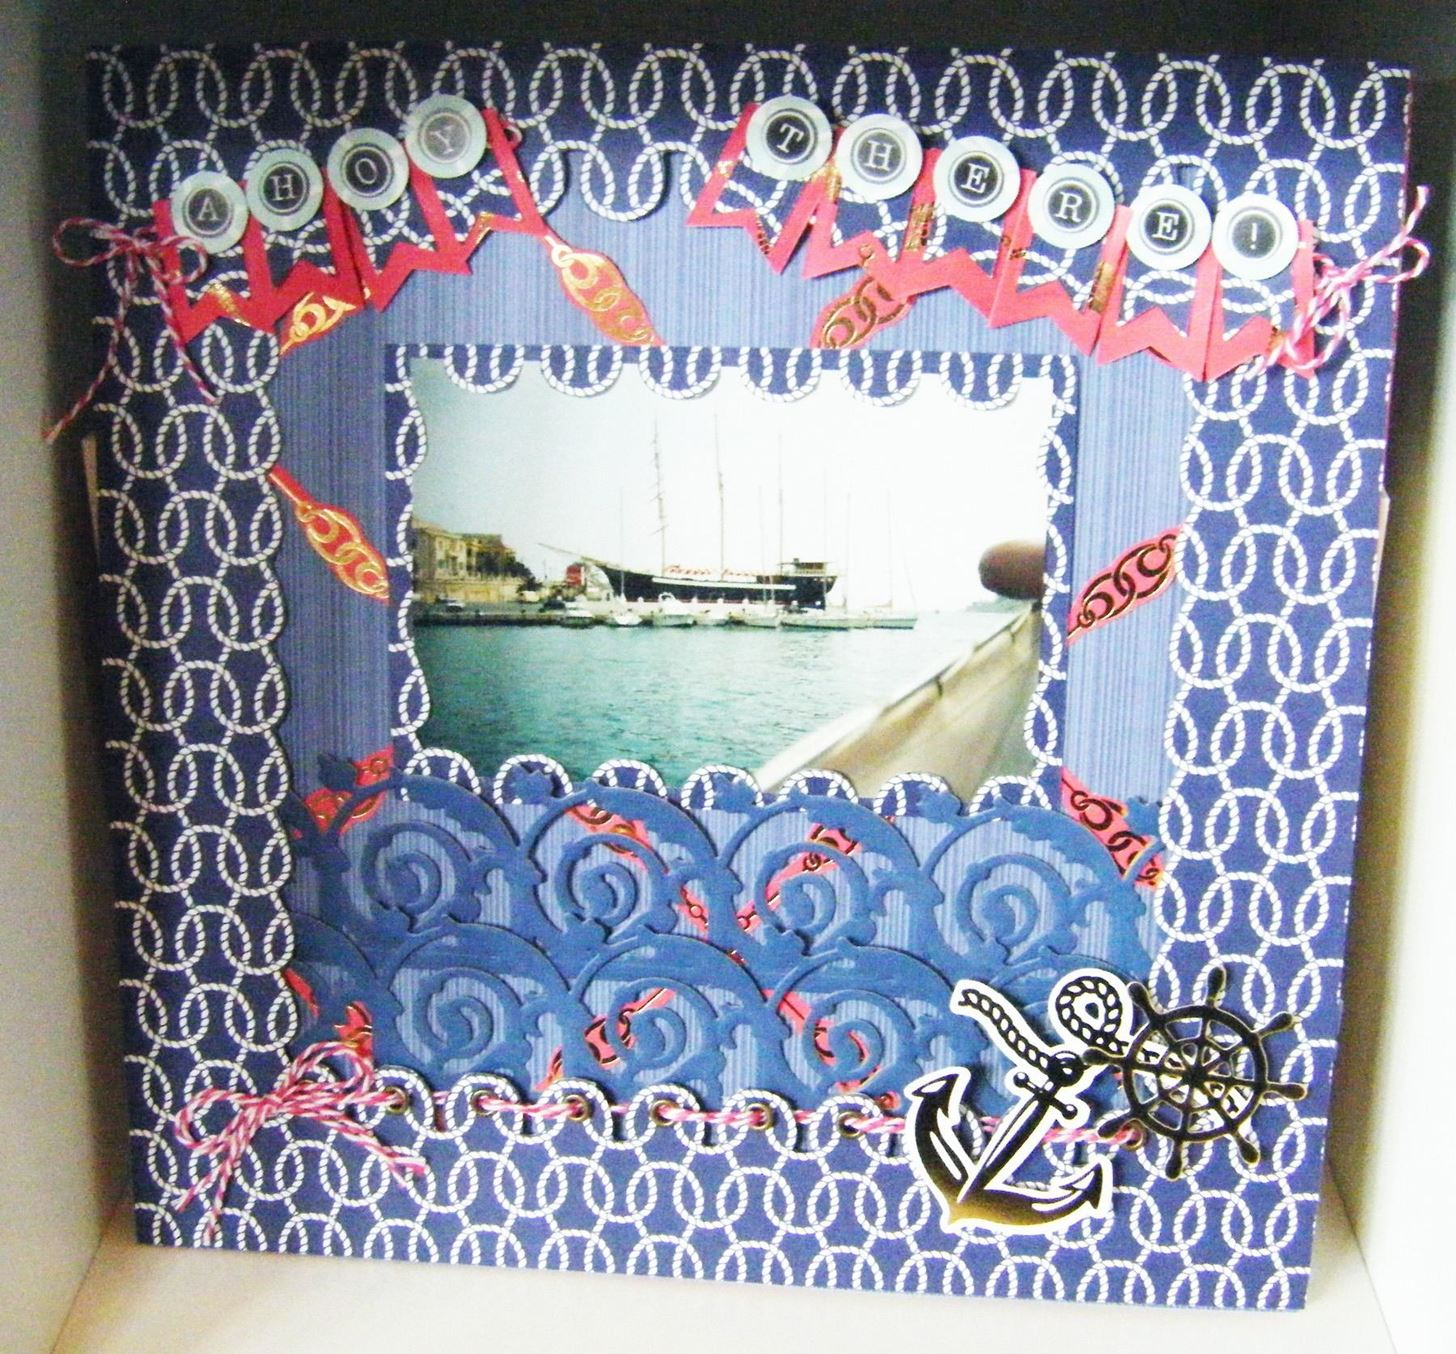 How to Make a Seafarer Scrapbooking Page